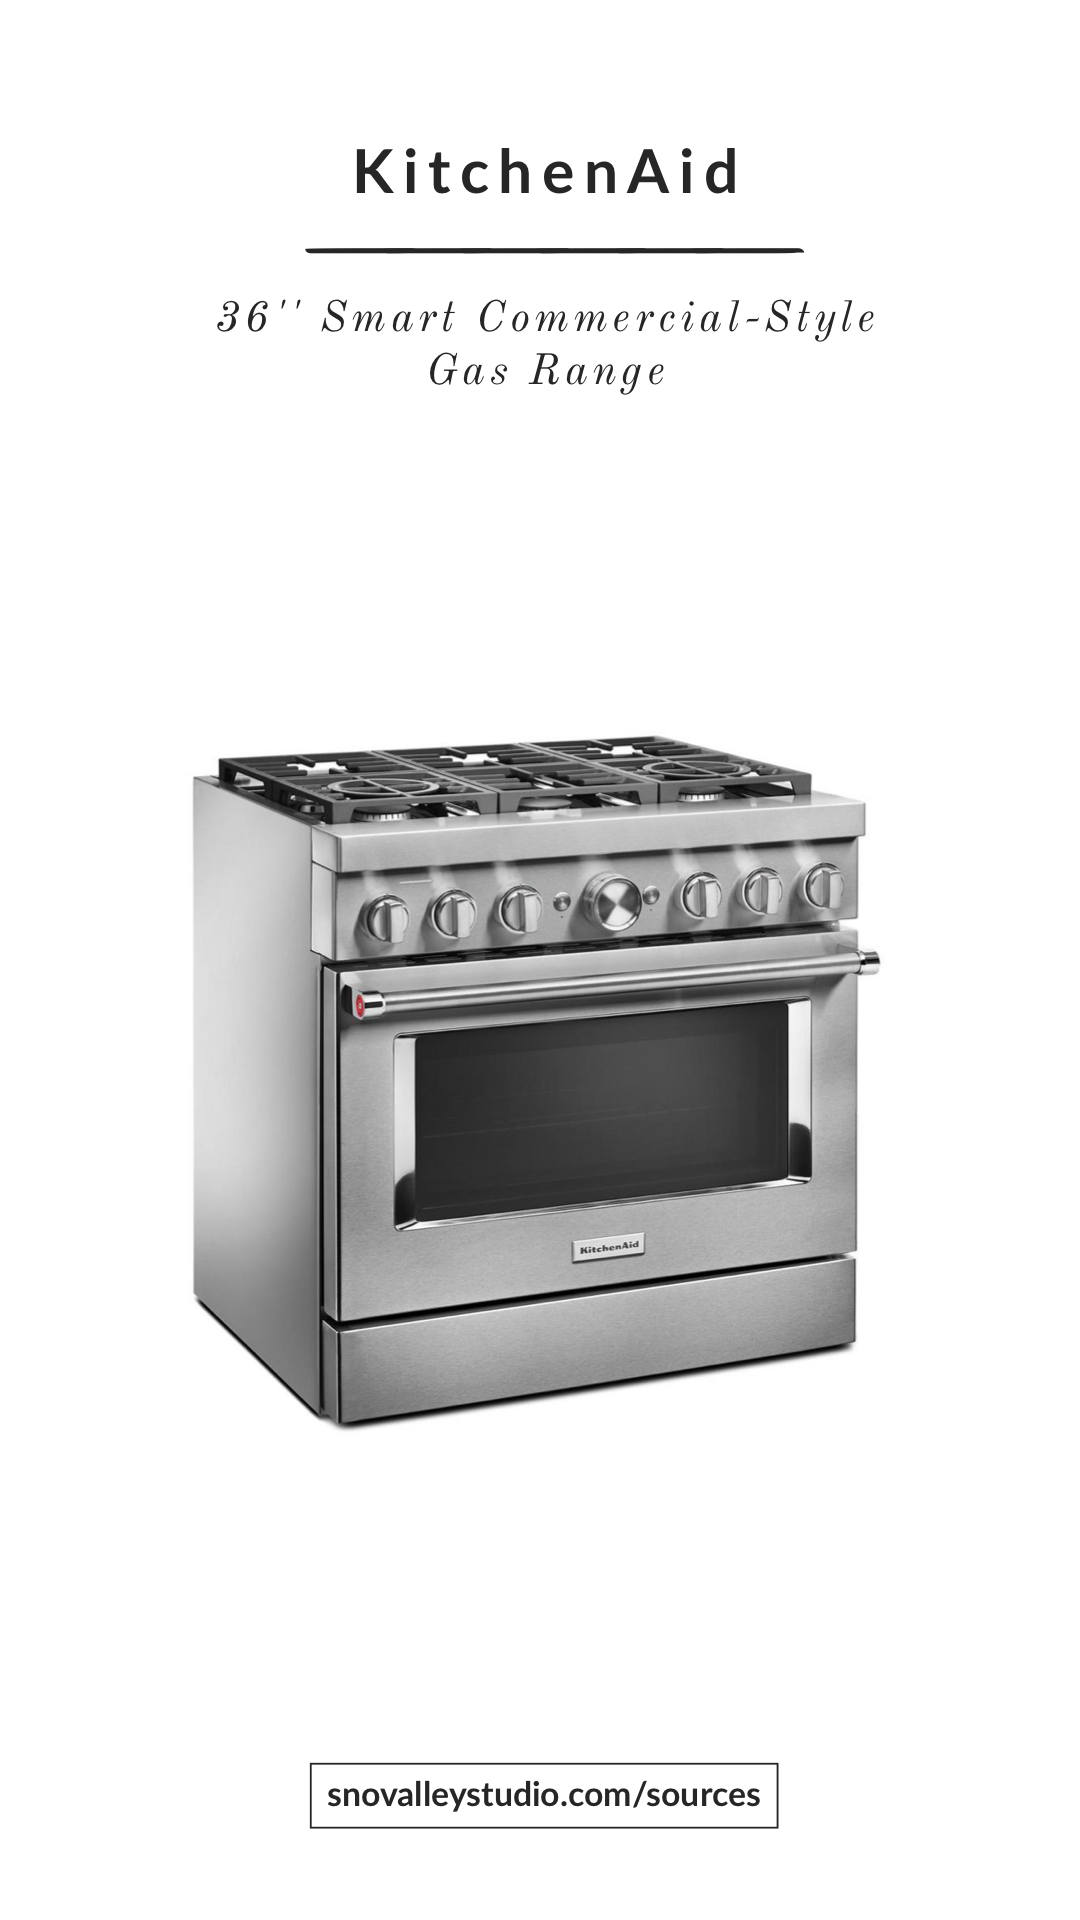 "Range: KitchenAid – 36"" Smart Commercial-Style Gas Range with 6 Burners"